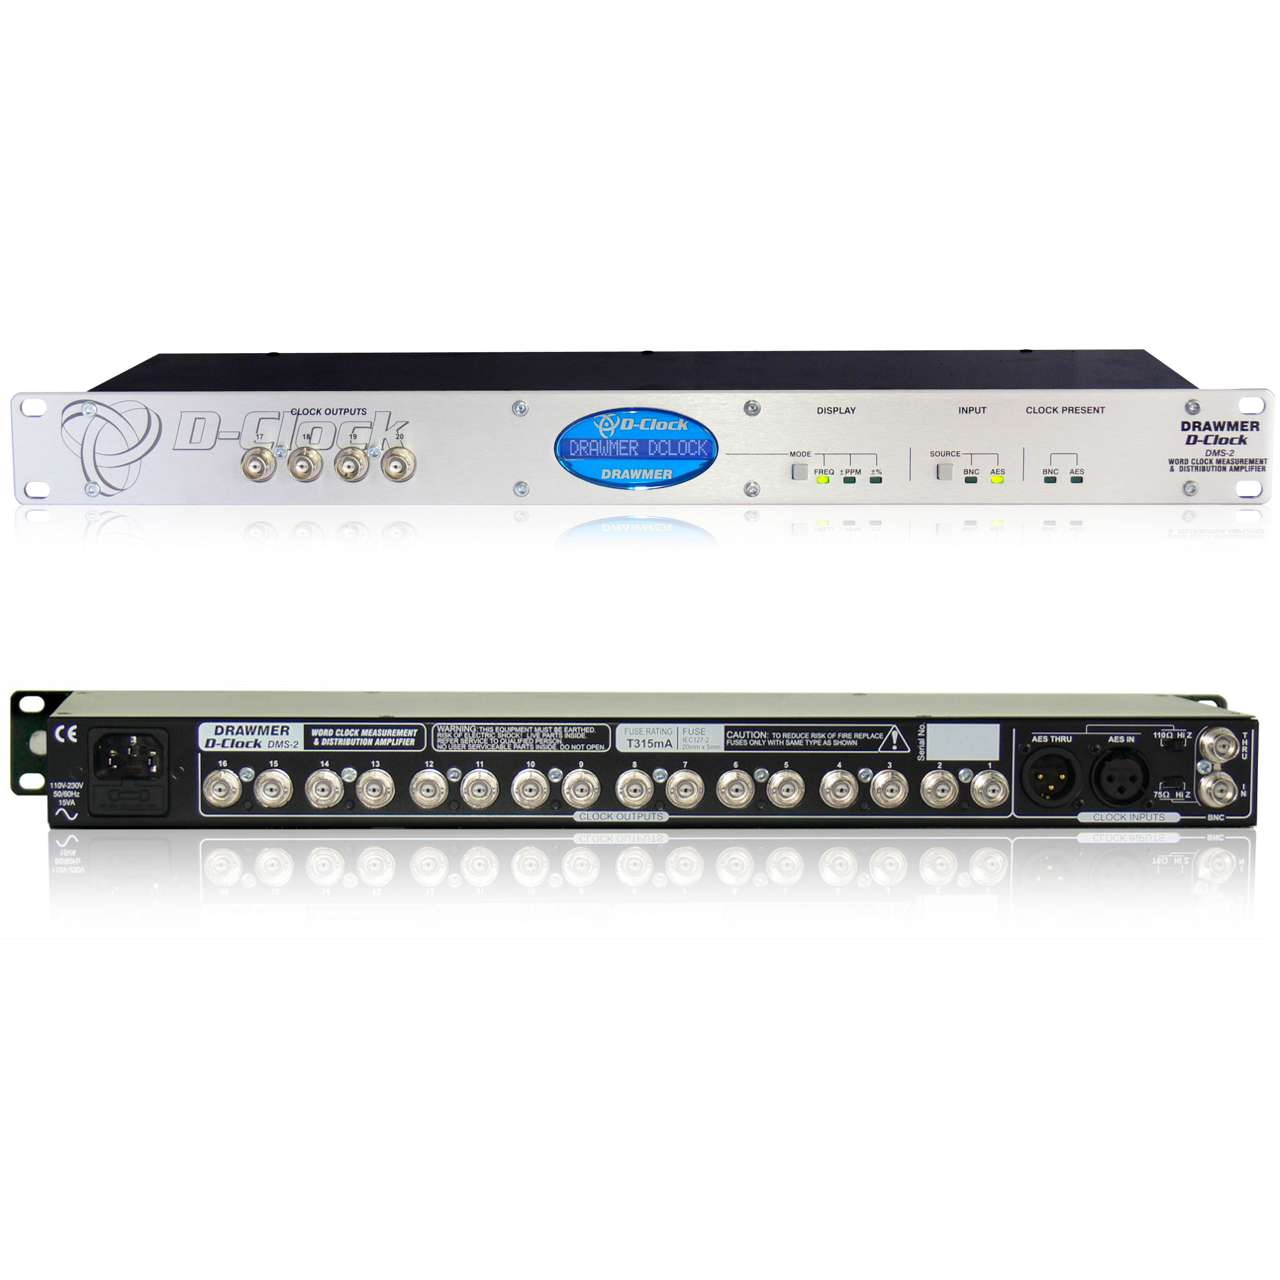 Burl Audio Bclk For B80 B16 Reflexion Arts The Video Distribution Amplifier Drawmer Dms 2 D Clock